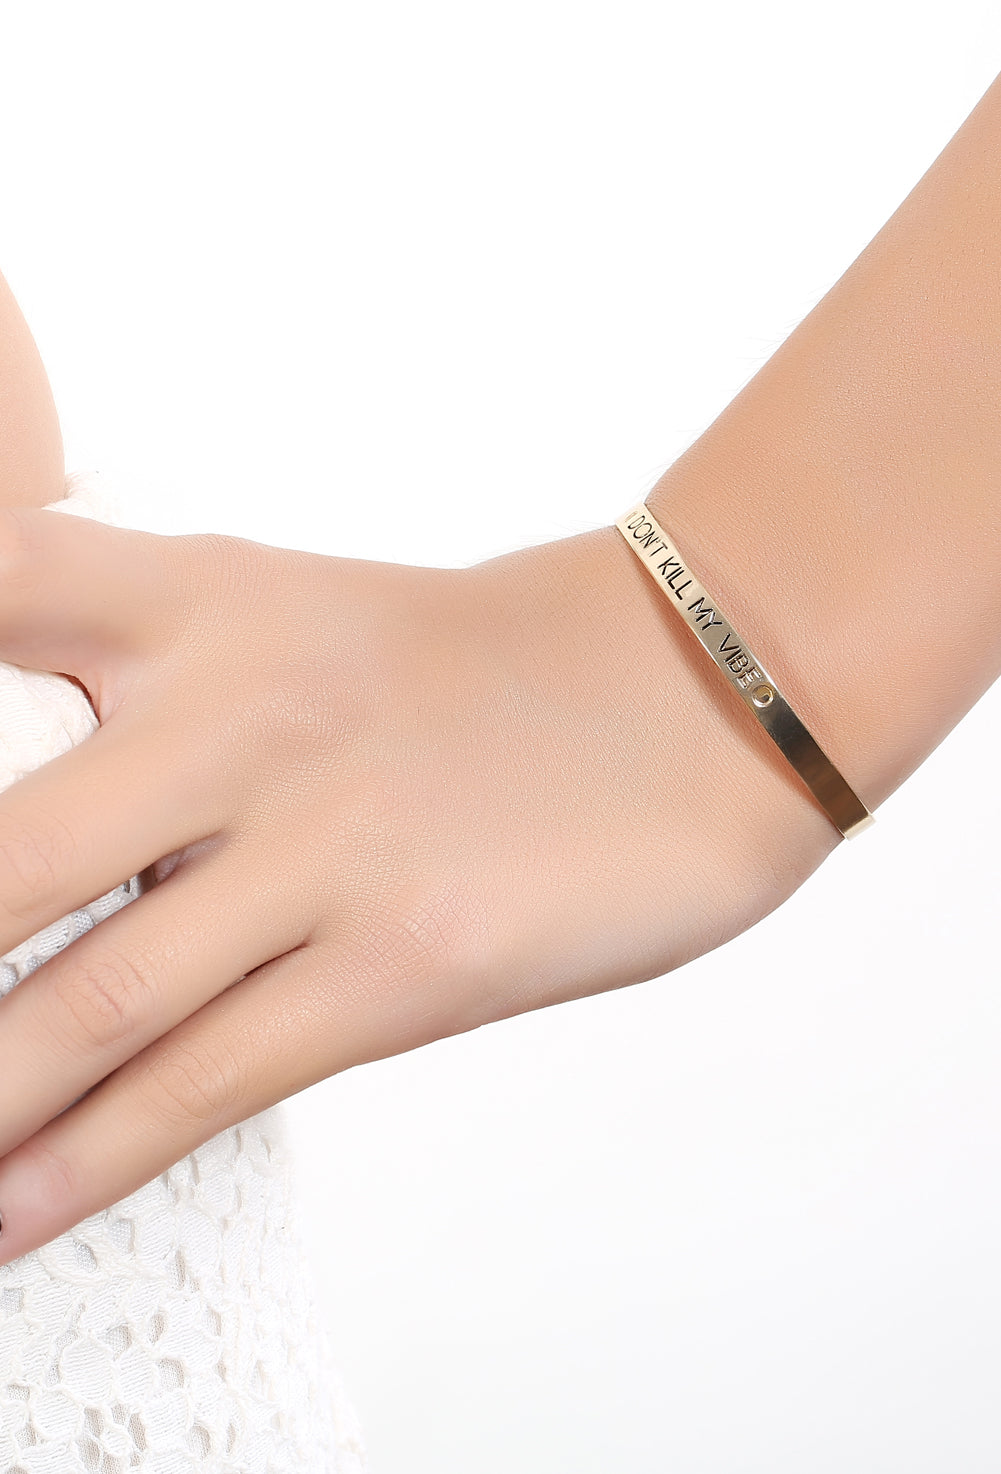 My Vibe Cosmo Band-THE BLING STORES1-Bracelet